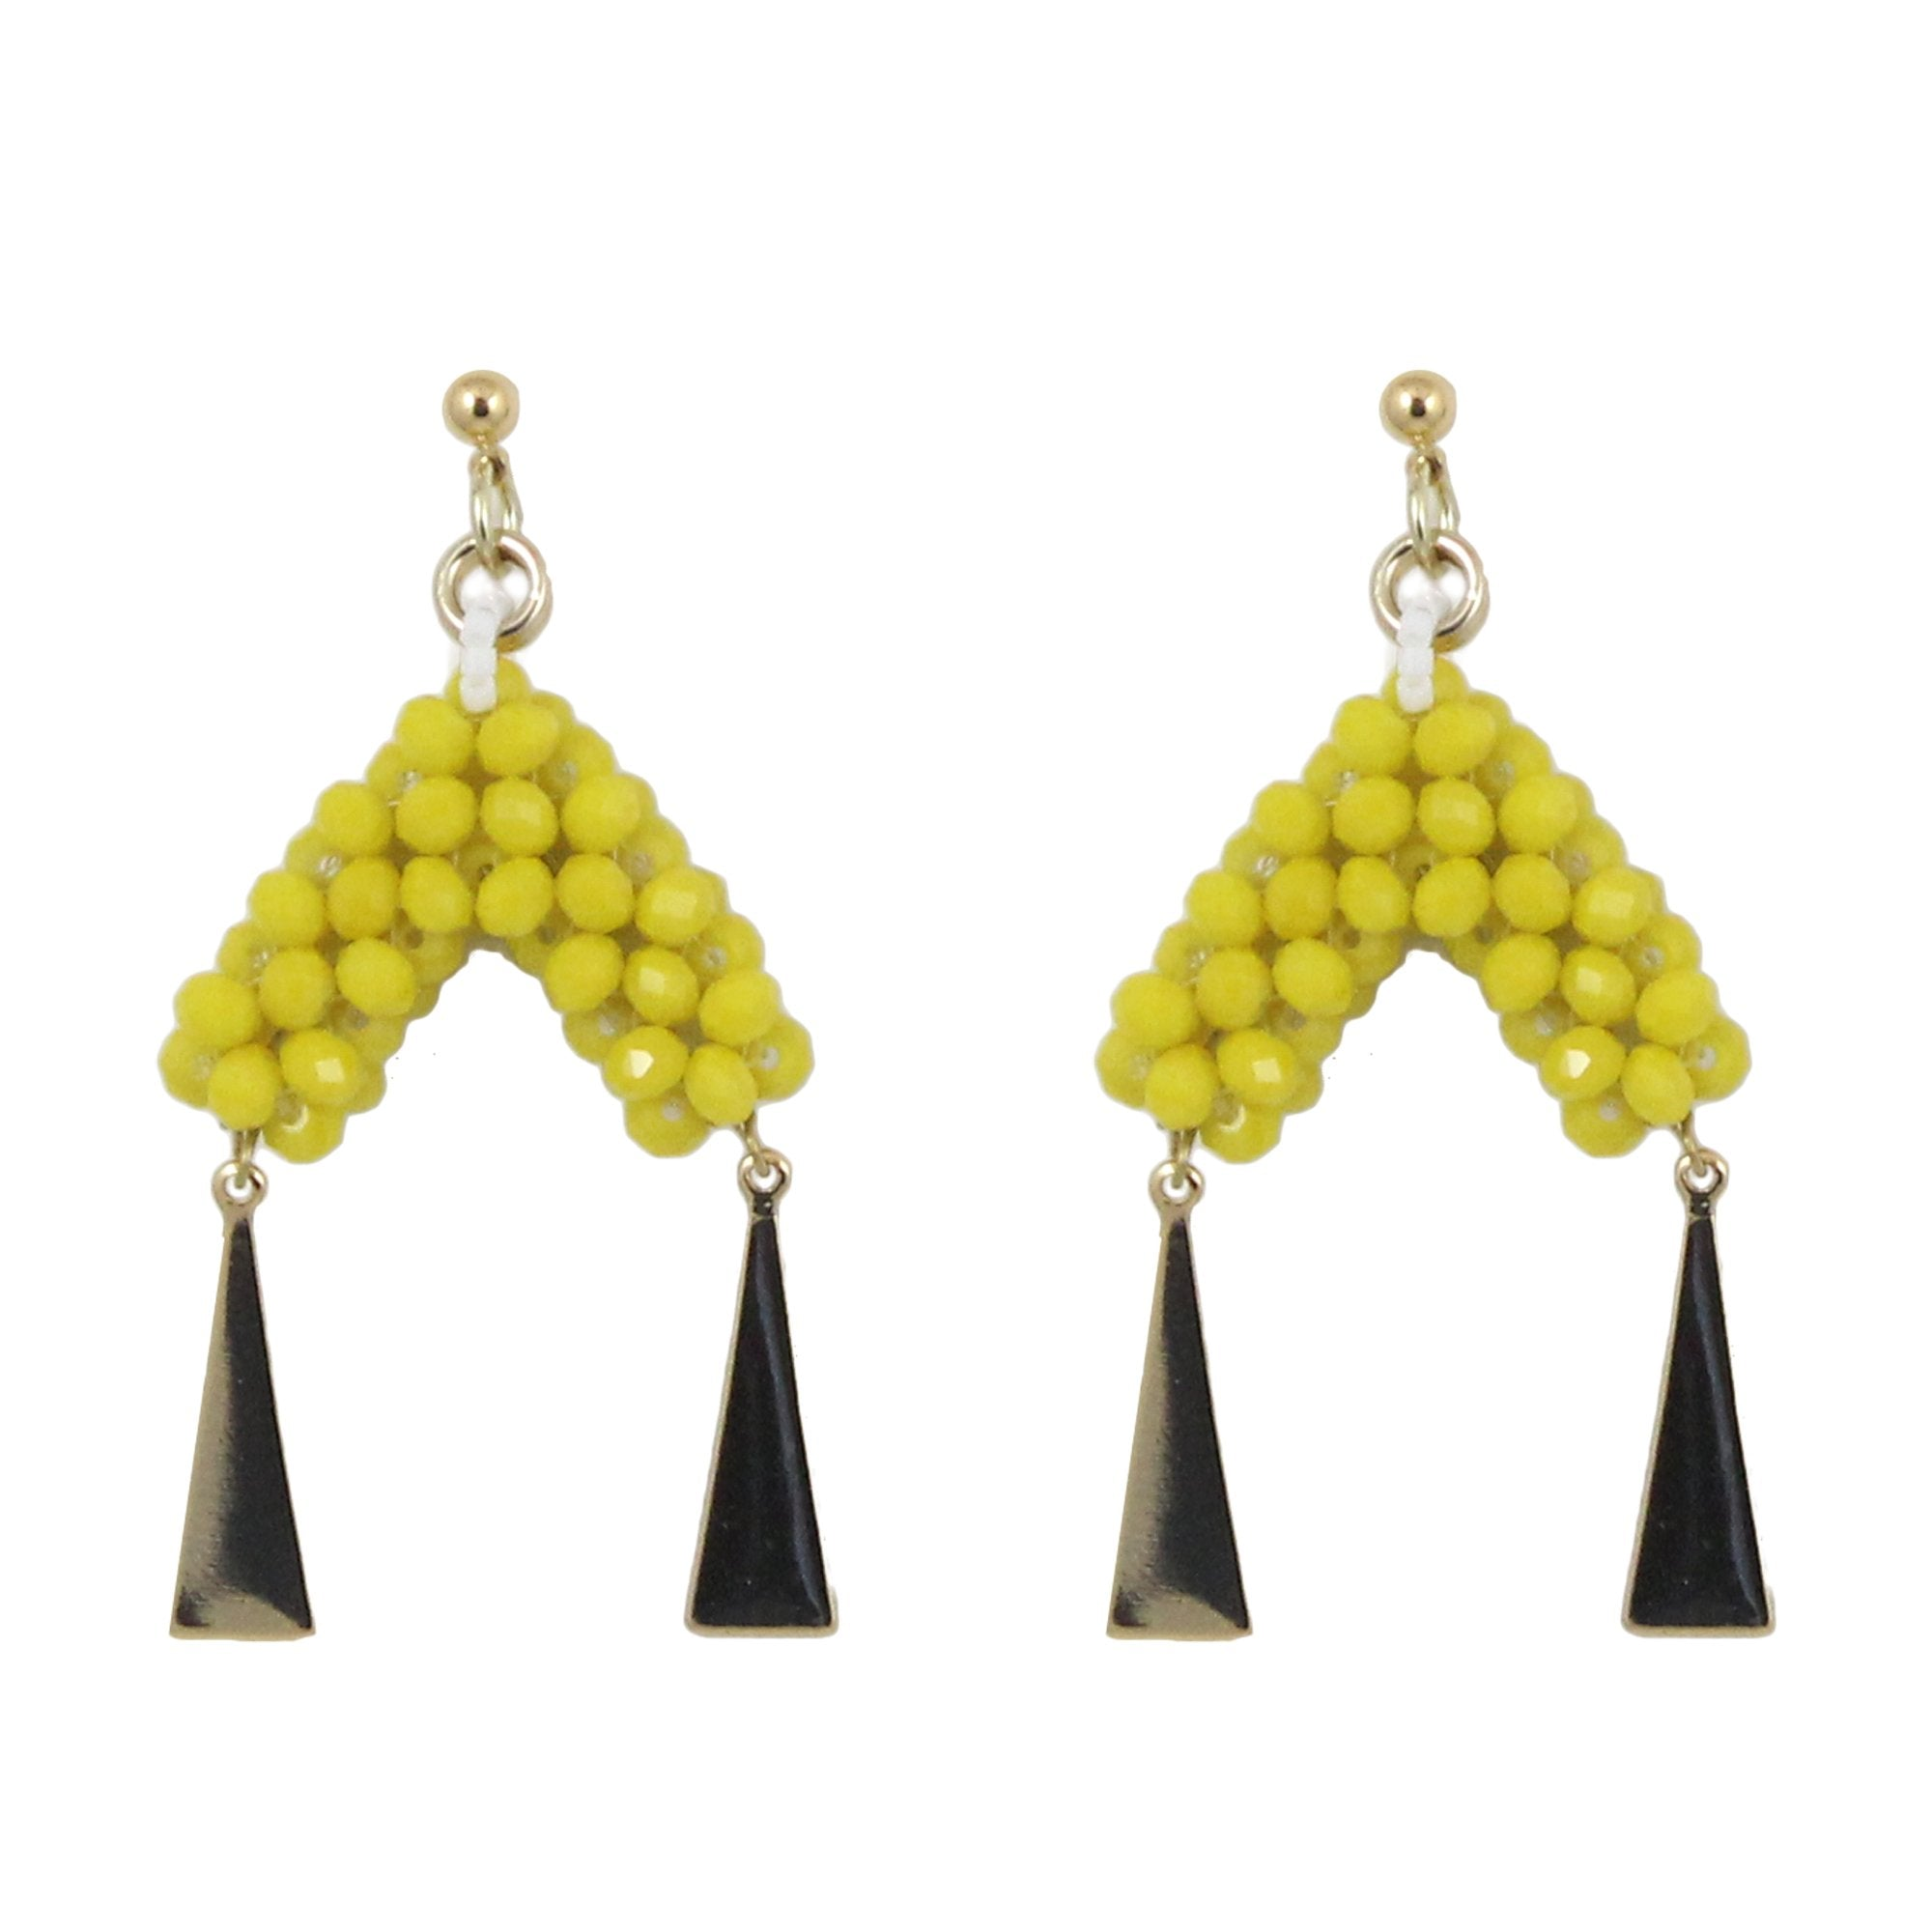 VOLLA earrings - 40% OFF